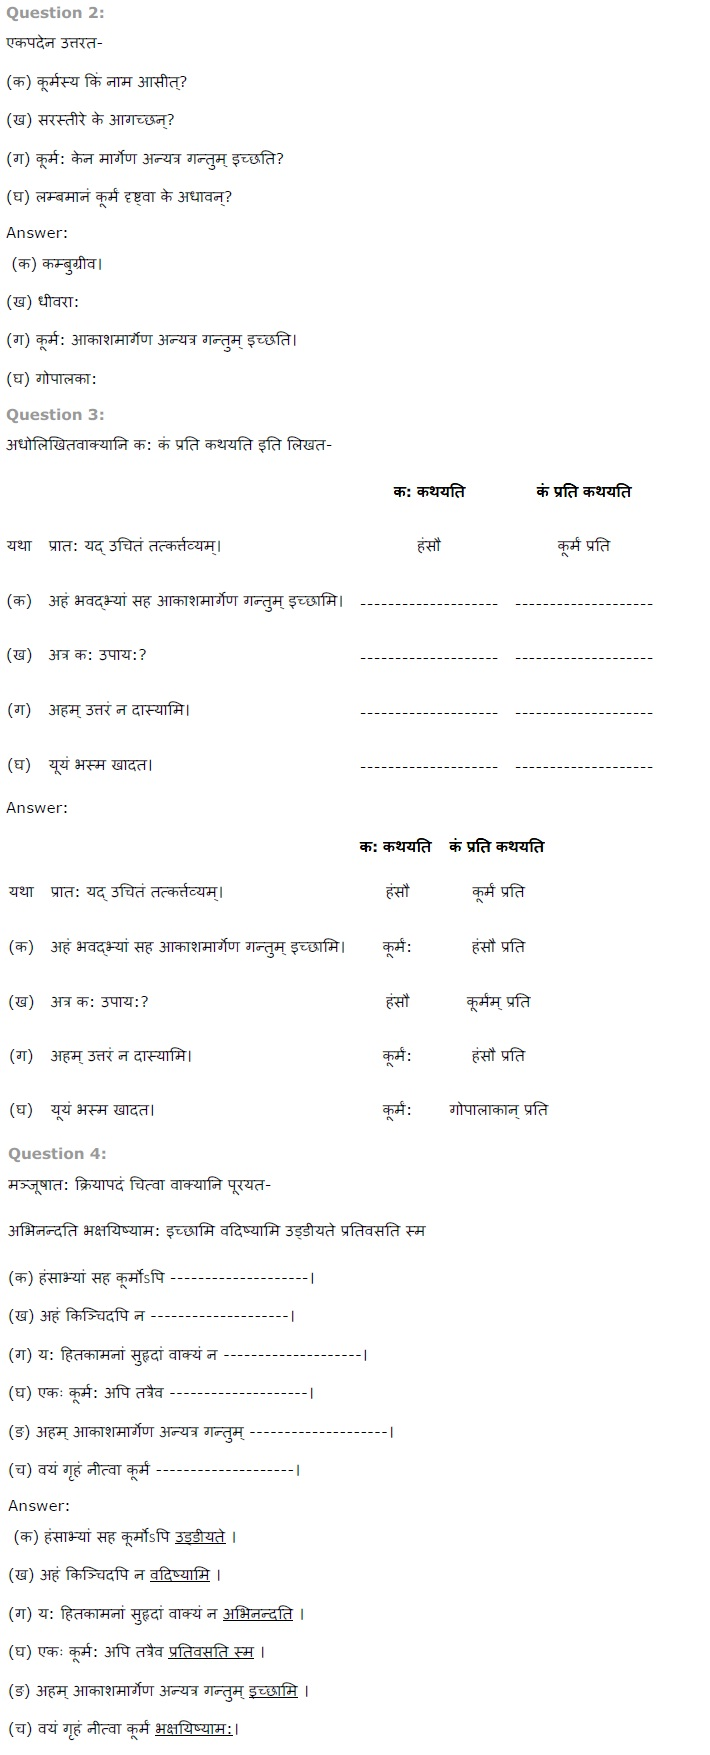 NCERT Solutions For Class 7th Sanskrit Chapter 2 दुर्बुद्धि विनश्यति PDF Download